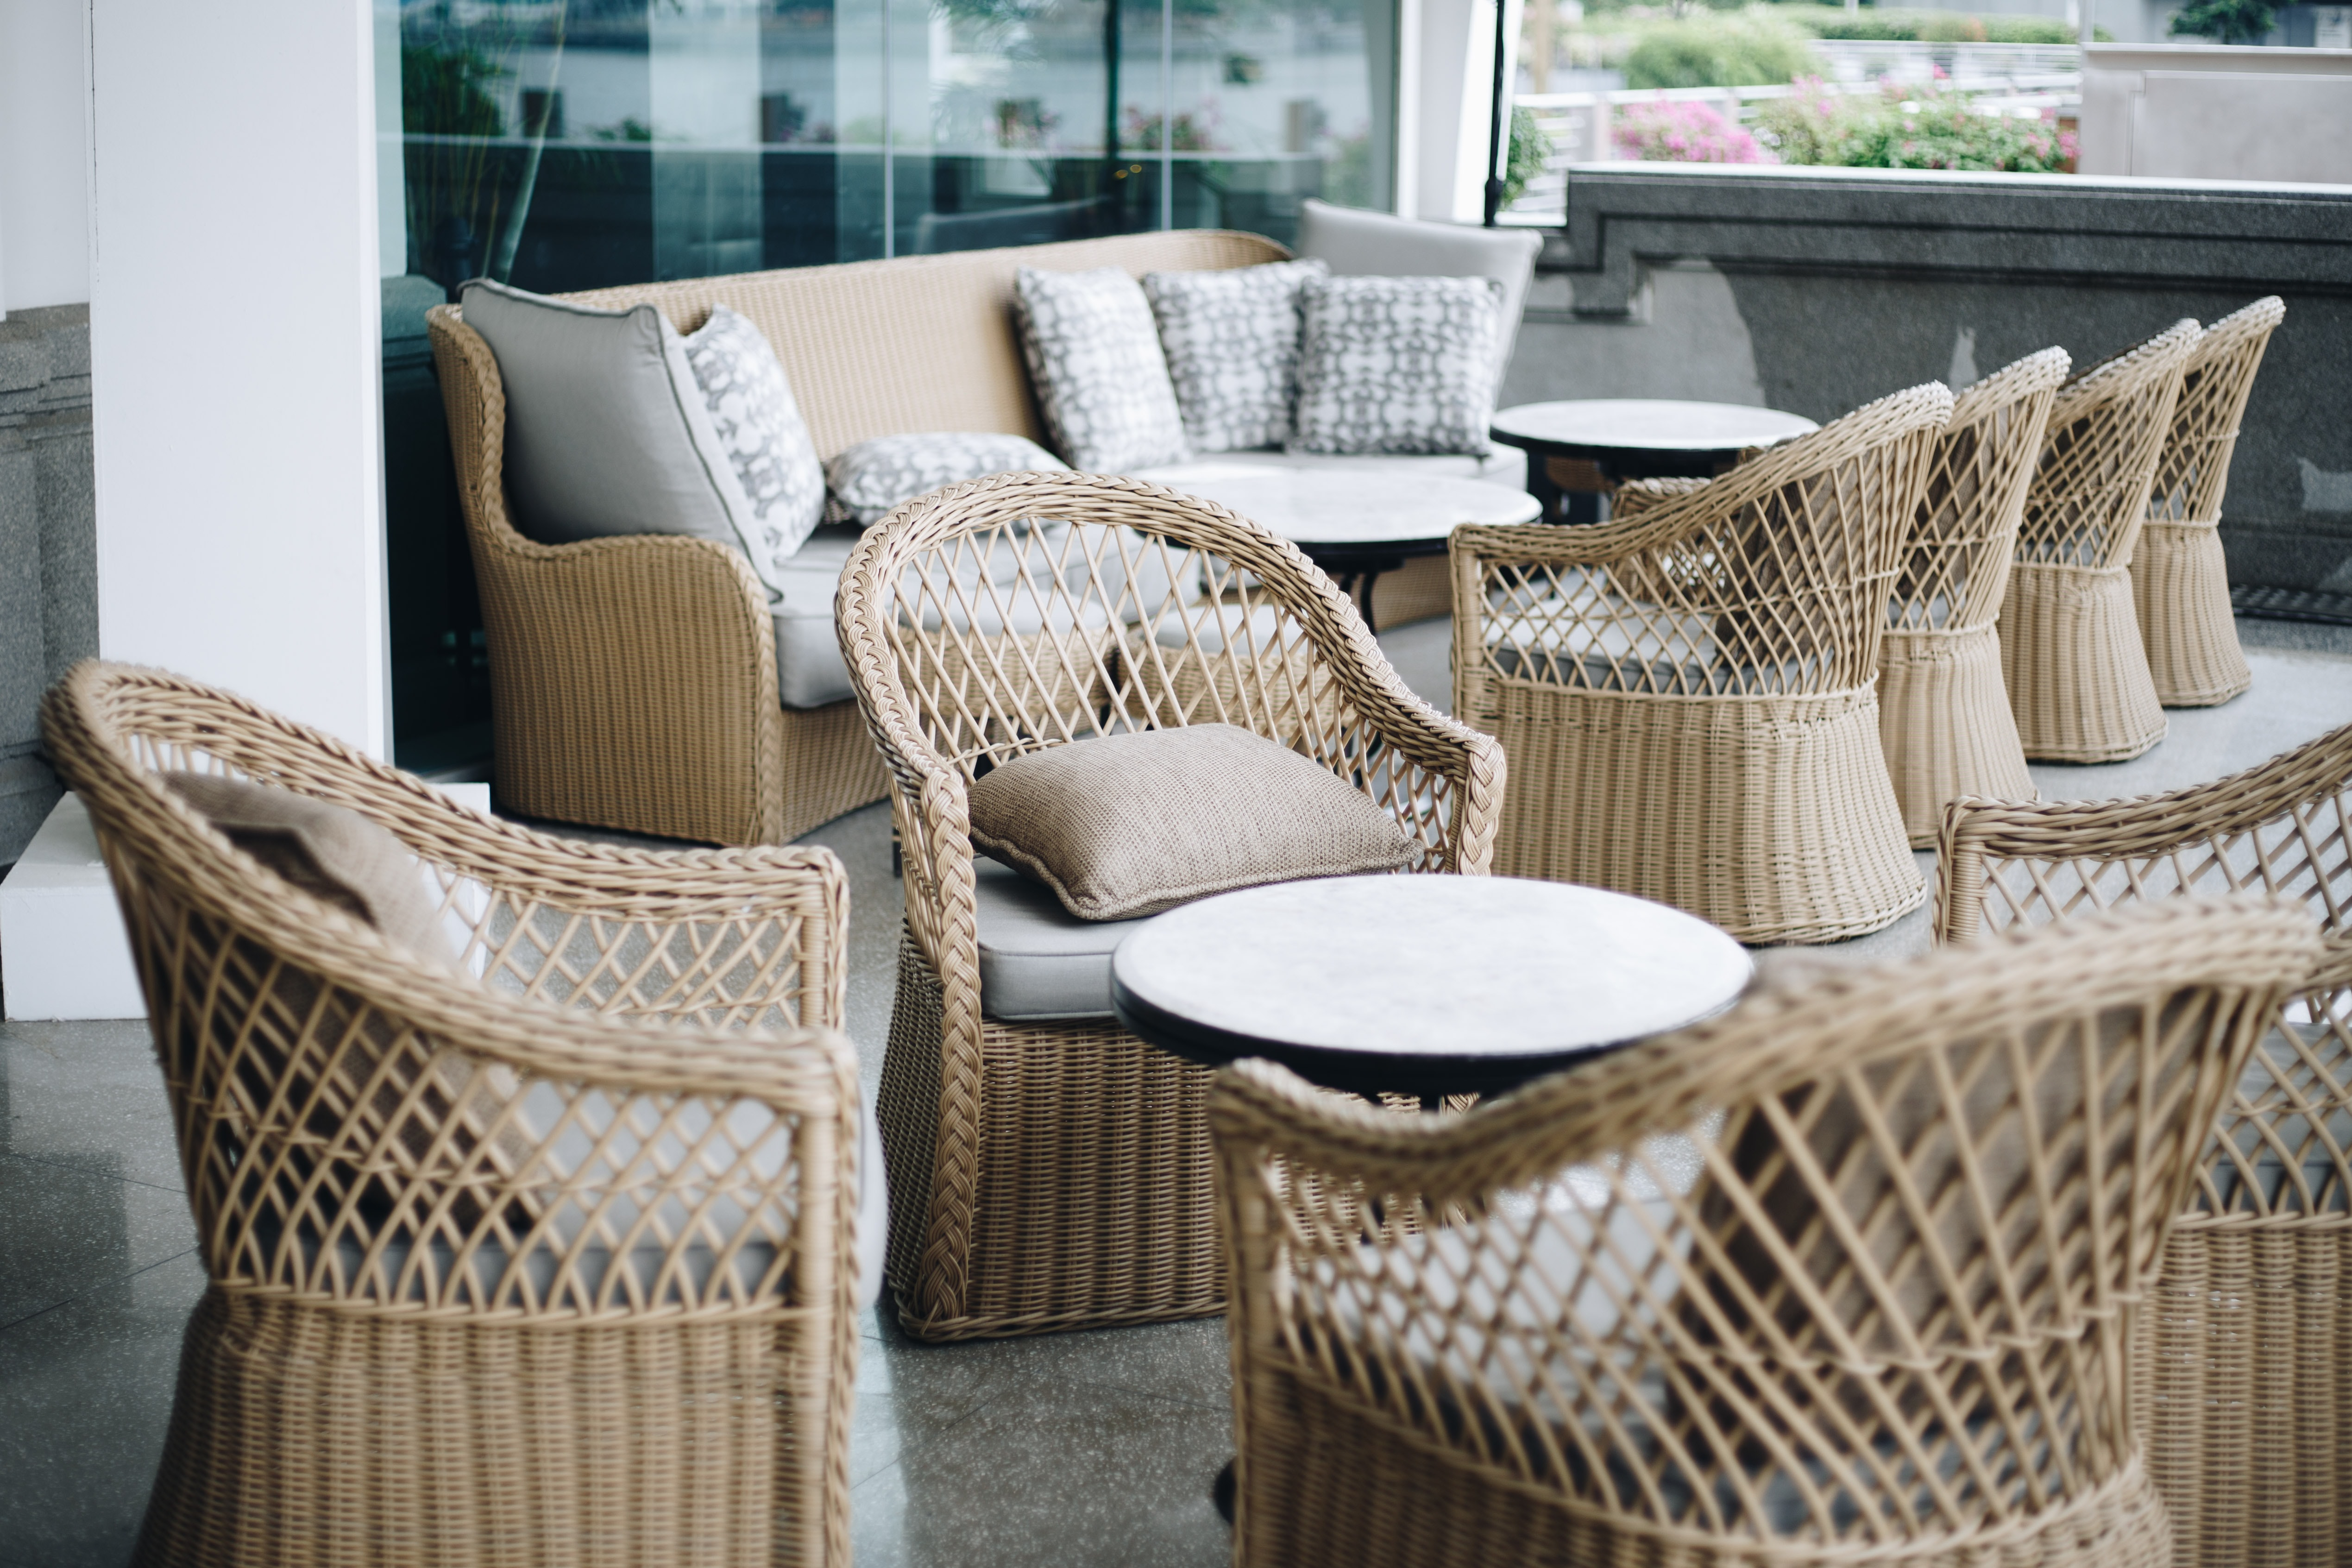 brown rattan chair lot outside the house